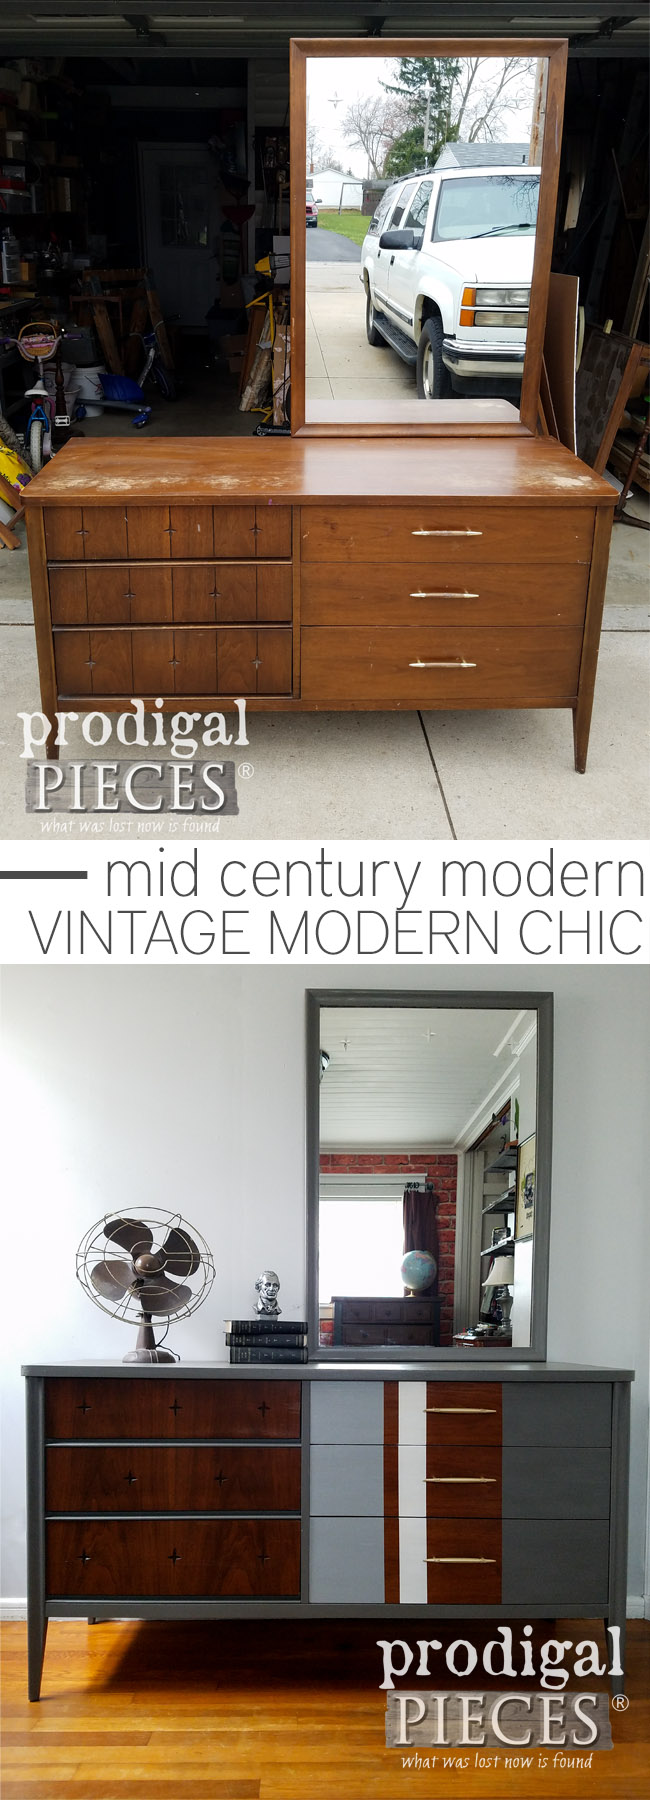 From dull and dated to modern chic. This vintage Broyhill Saga dresser got the update it needed to give it new life. New look done by a teen and can be seen at Prodigal Pieces | prodigalpieces.com